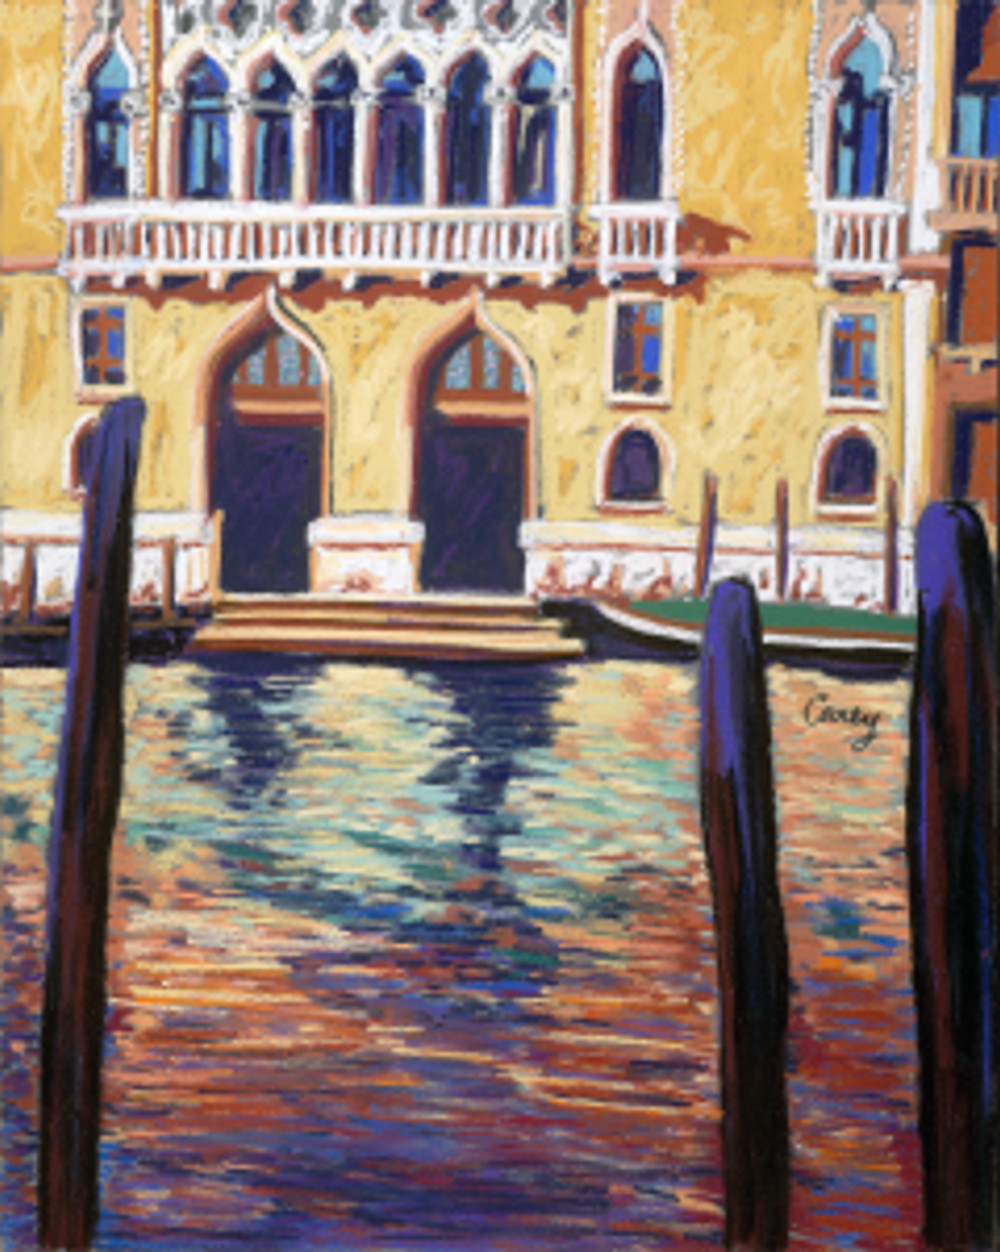 Venetian Palace by Cathy Carey 16 x 20 pastel